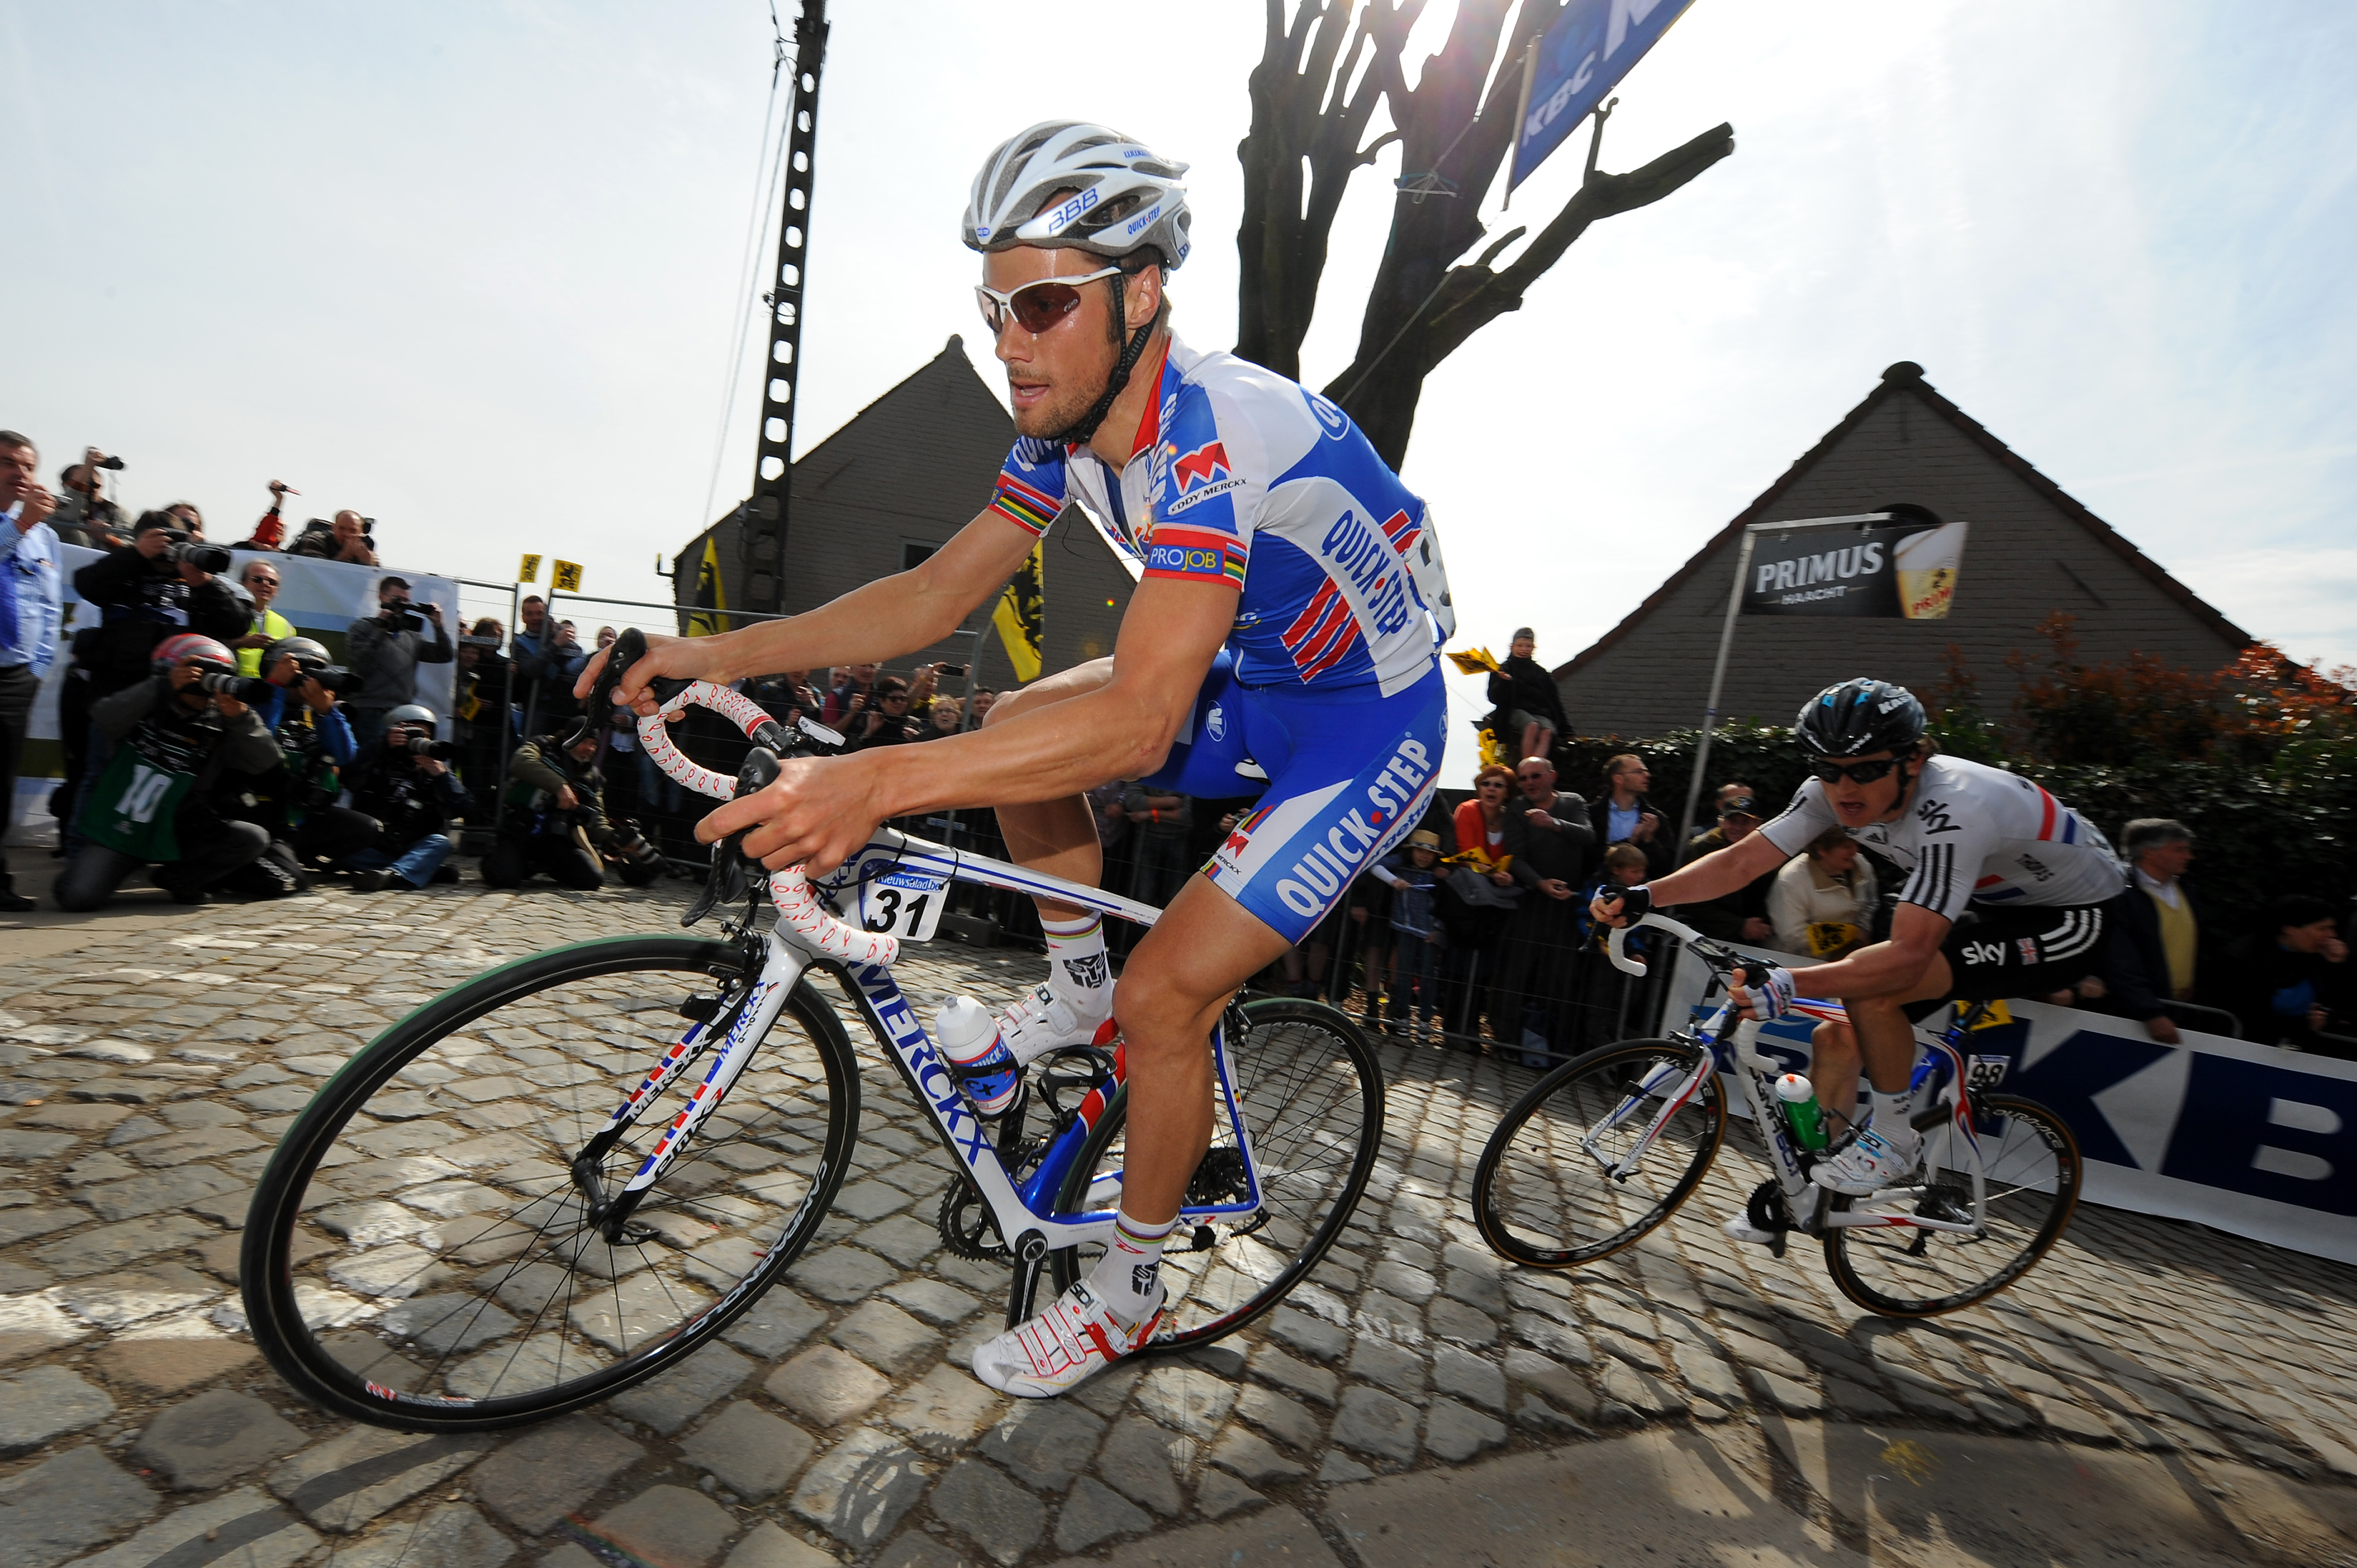 Cycling : Tour of Flanders 2011